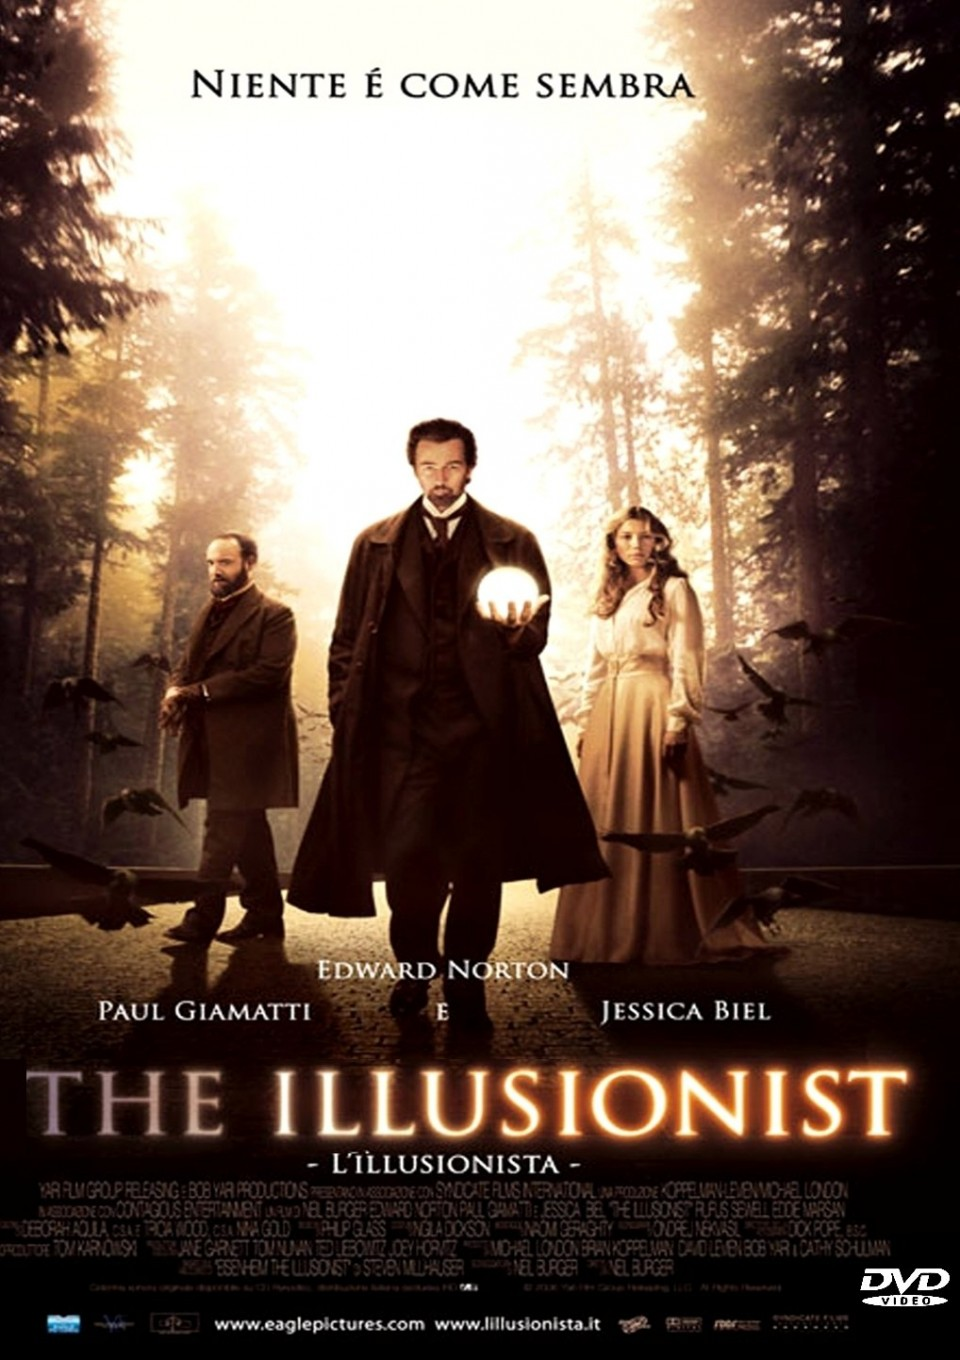 The Illusionist - L'illusionista